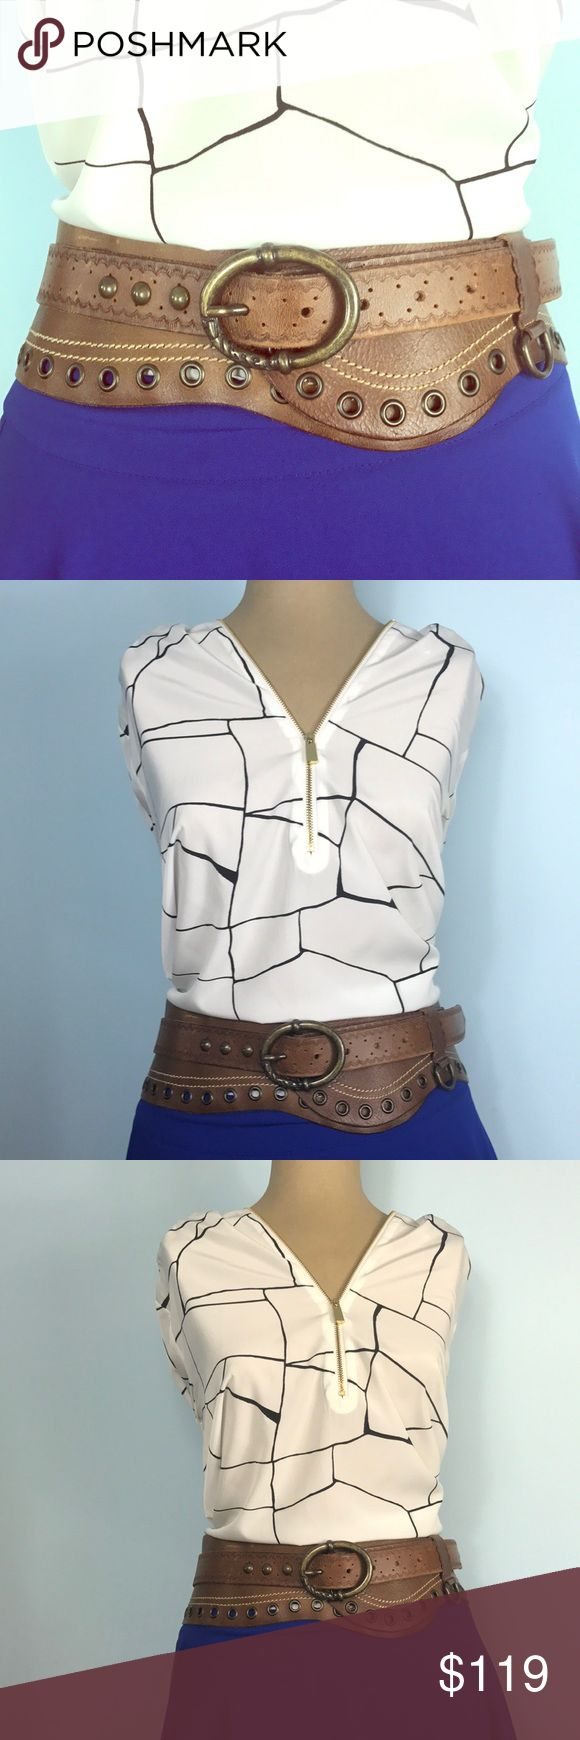 """Diesel 💯 Leather Wide Buckle Waist Belt Diesel 100% Leather Wide Buckle Waist Belt  Made in Italy  Size 85/34 Measures 41"""" Long and 3.5""""Wide   Seen here paired with a skirt and blouse, this Belt can be styled many different ways! Absolutely perfect for showing off your waist in a loose fitting dress! Add some cowgirl boots and bam! You've got one killer outfit! 🌼💖  🌸Preloved🌸 A few marks as shown in photo. Diesel Accessories Belts"""